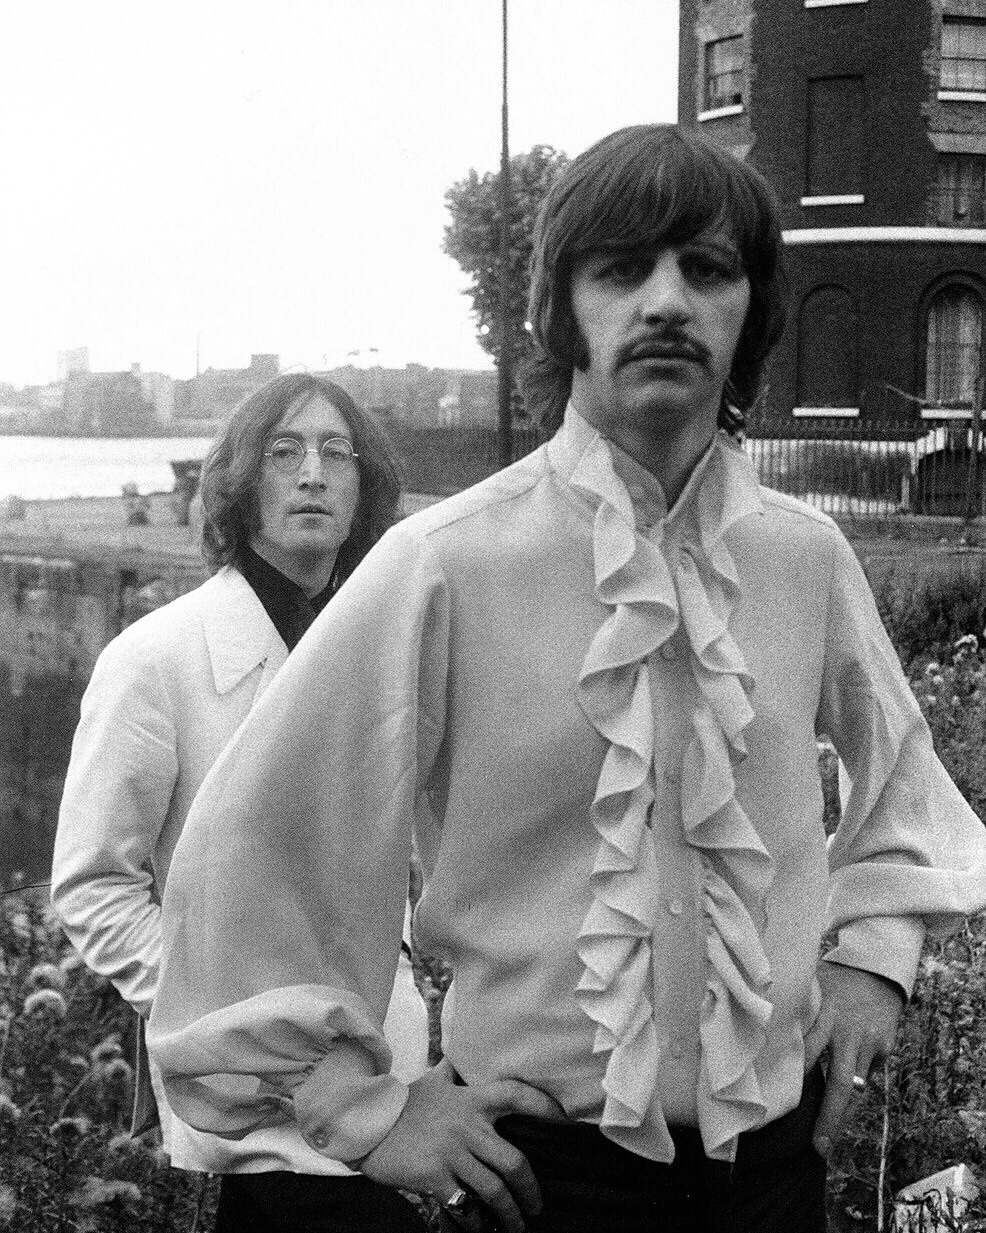 John Lennon and Ringo Starr on the Beatles' Mad Day Out photo shoot, July 28th 1968.